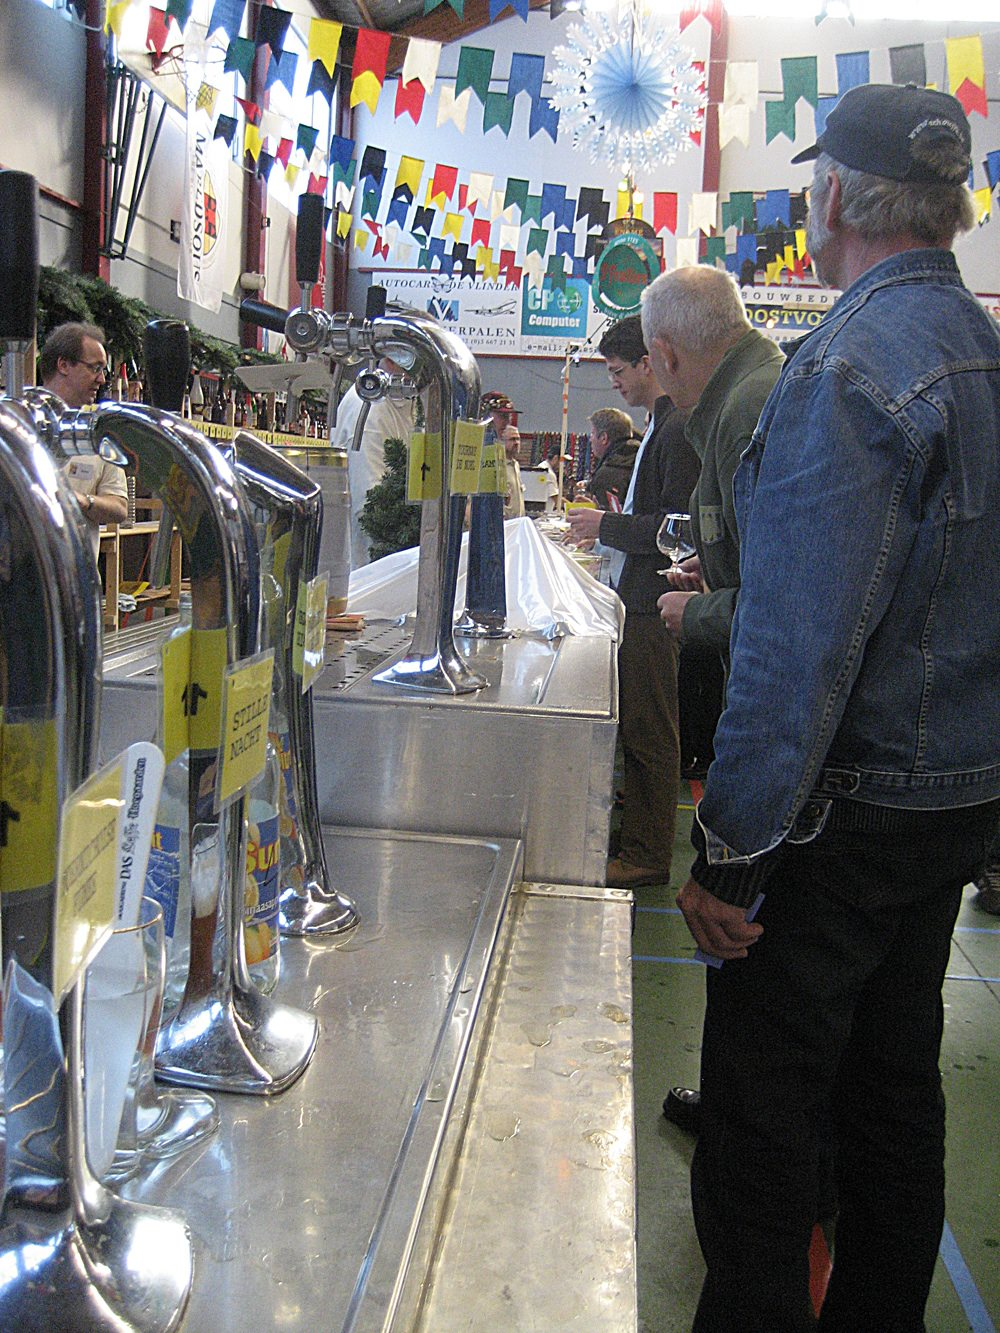 Thirsty patrons line up for beer at Kerstbierfestival in Essen - Photo courtesy William Roelens.